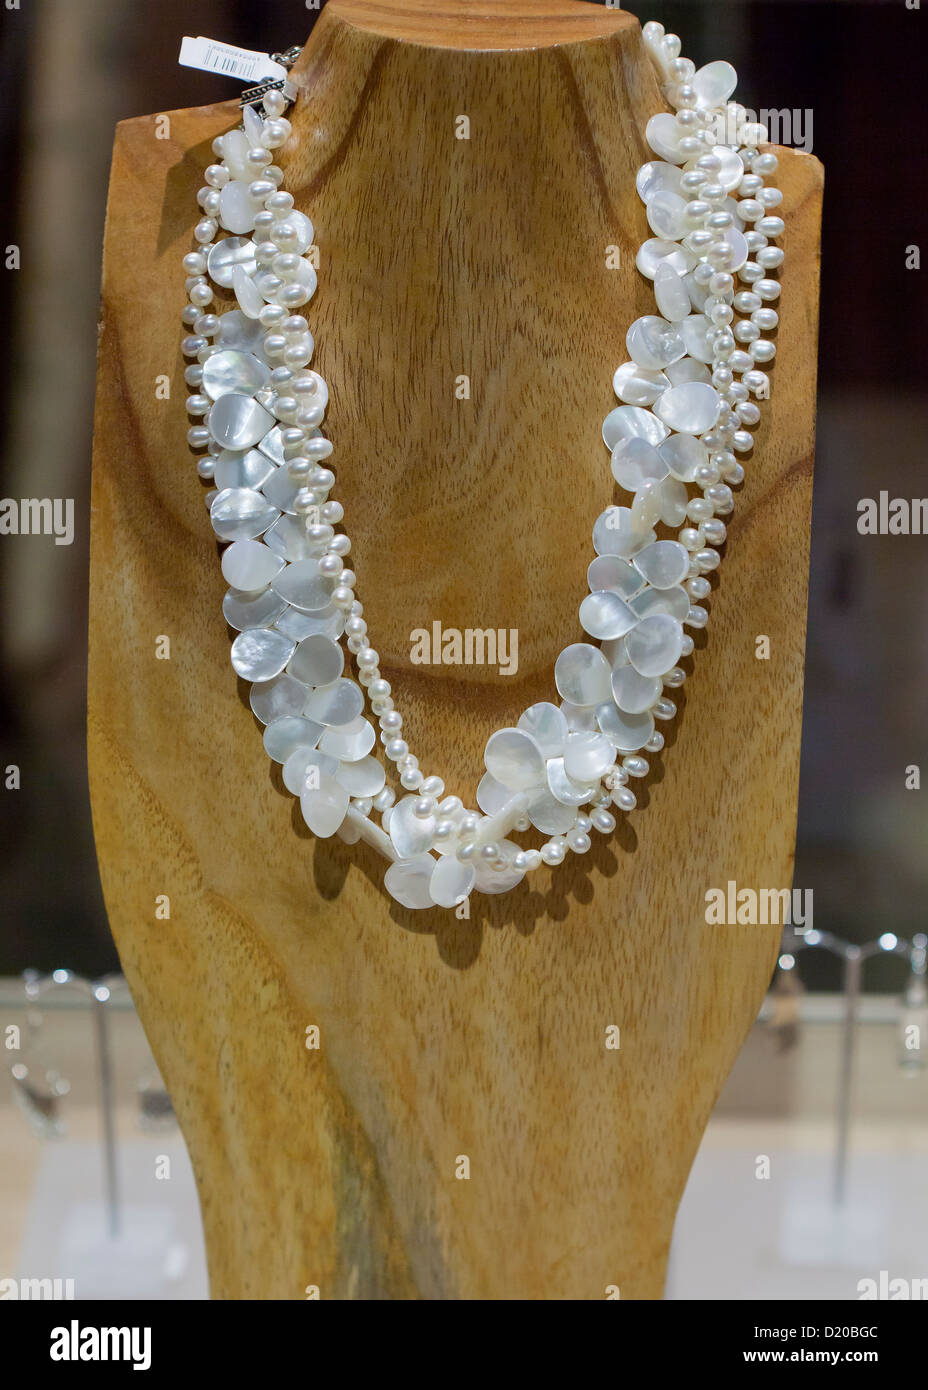 Mother of pearl necklace - Stock Image